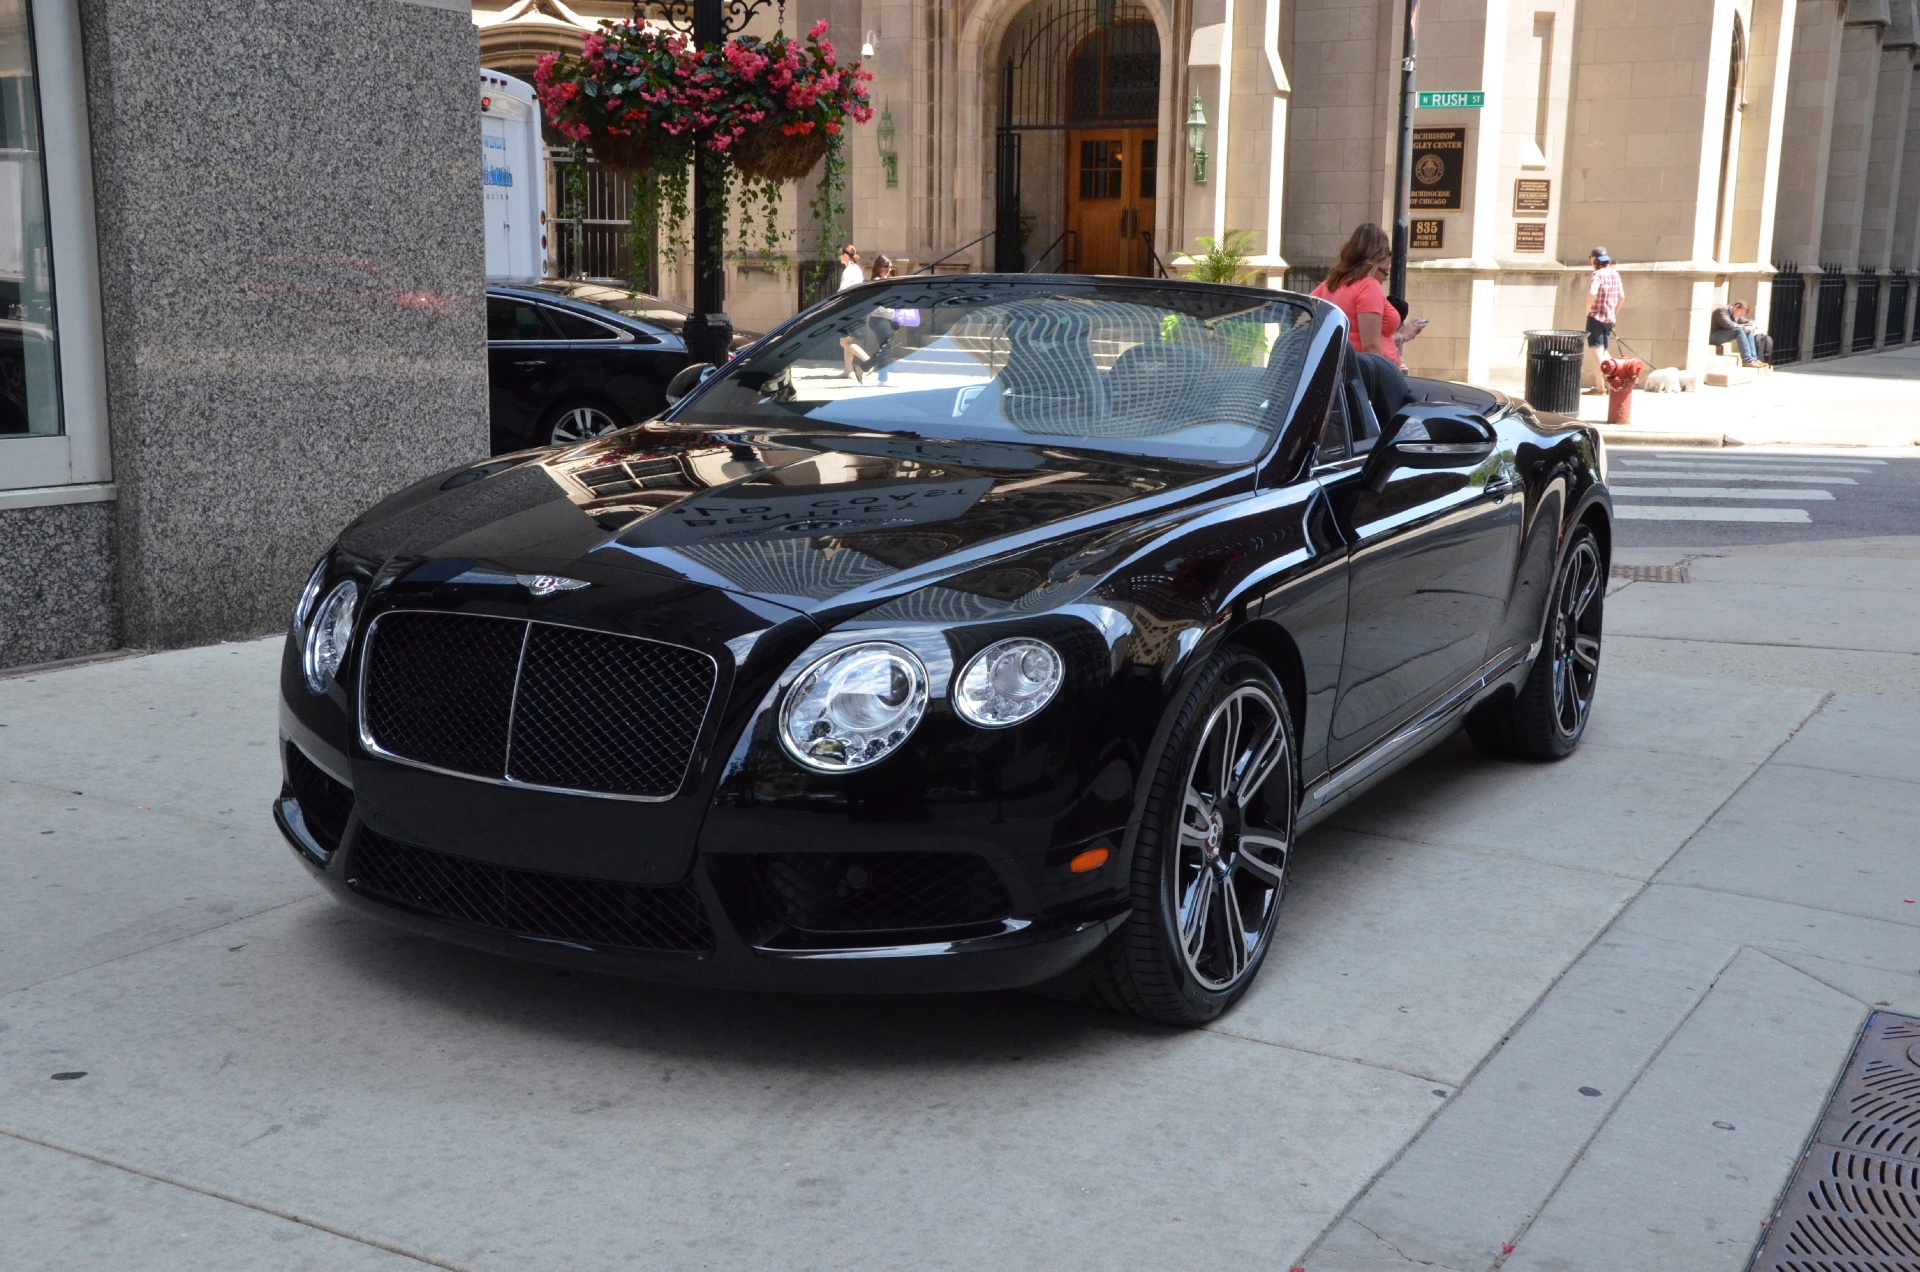 2014 bentley continental gtc v8 new bentley new lamborghini new. Cars Review. Best American Auto & Cars Review